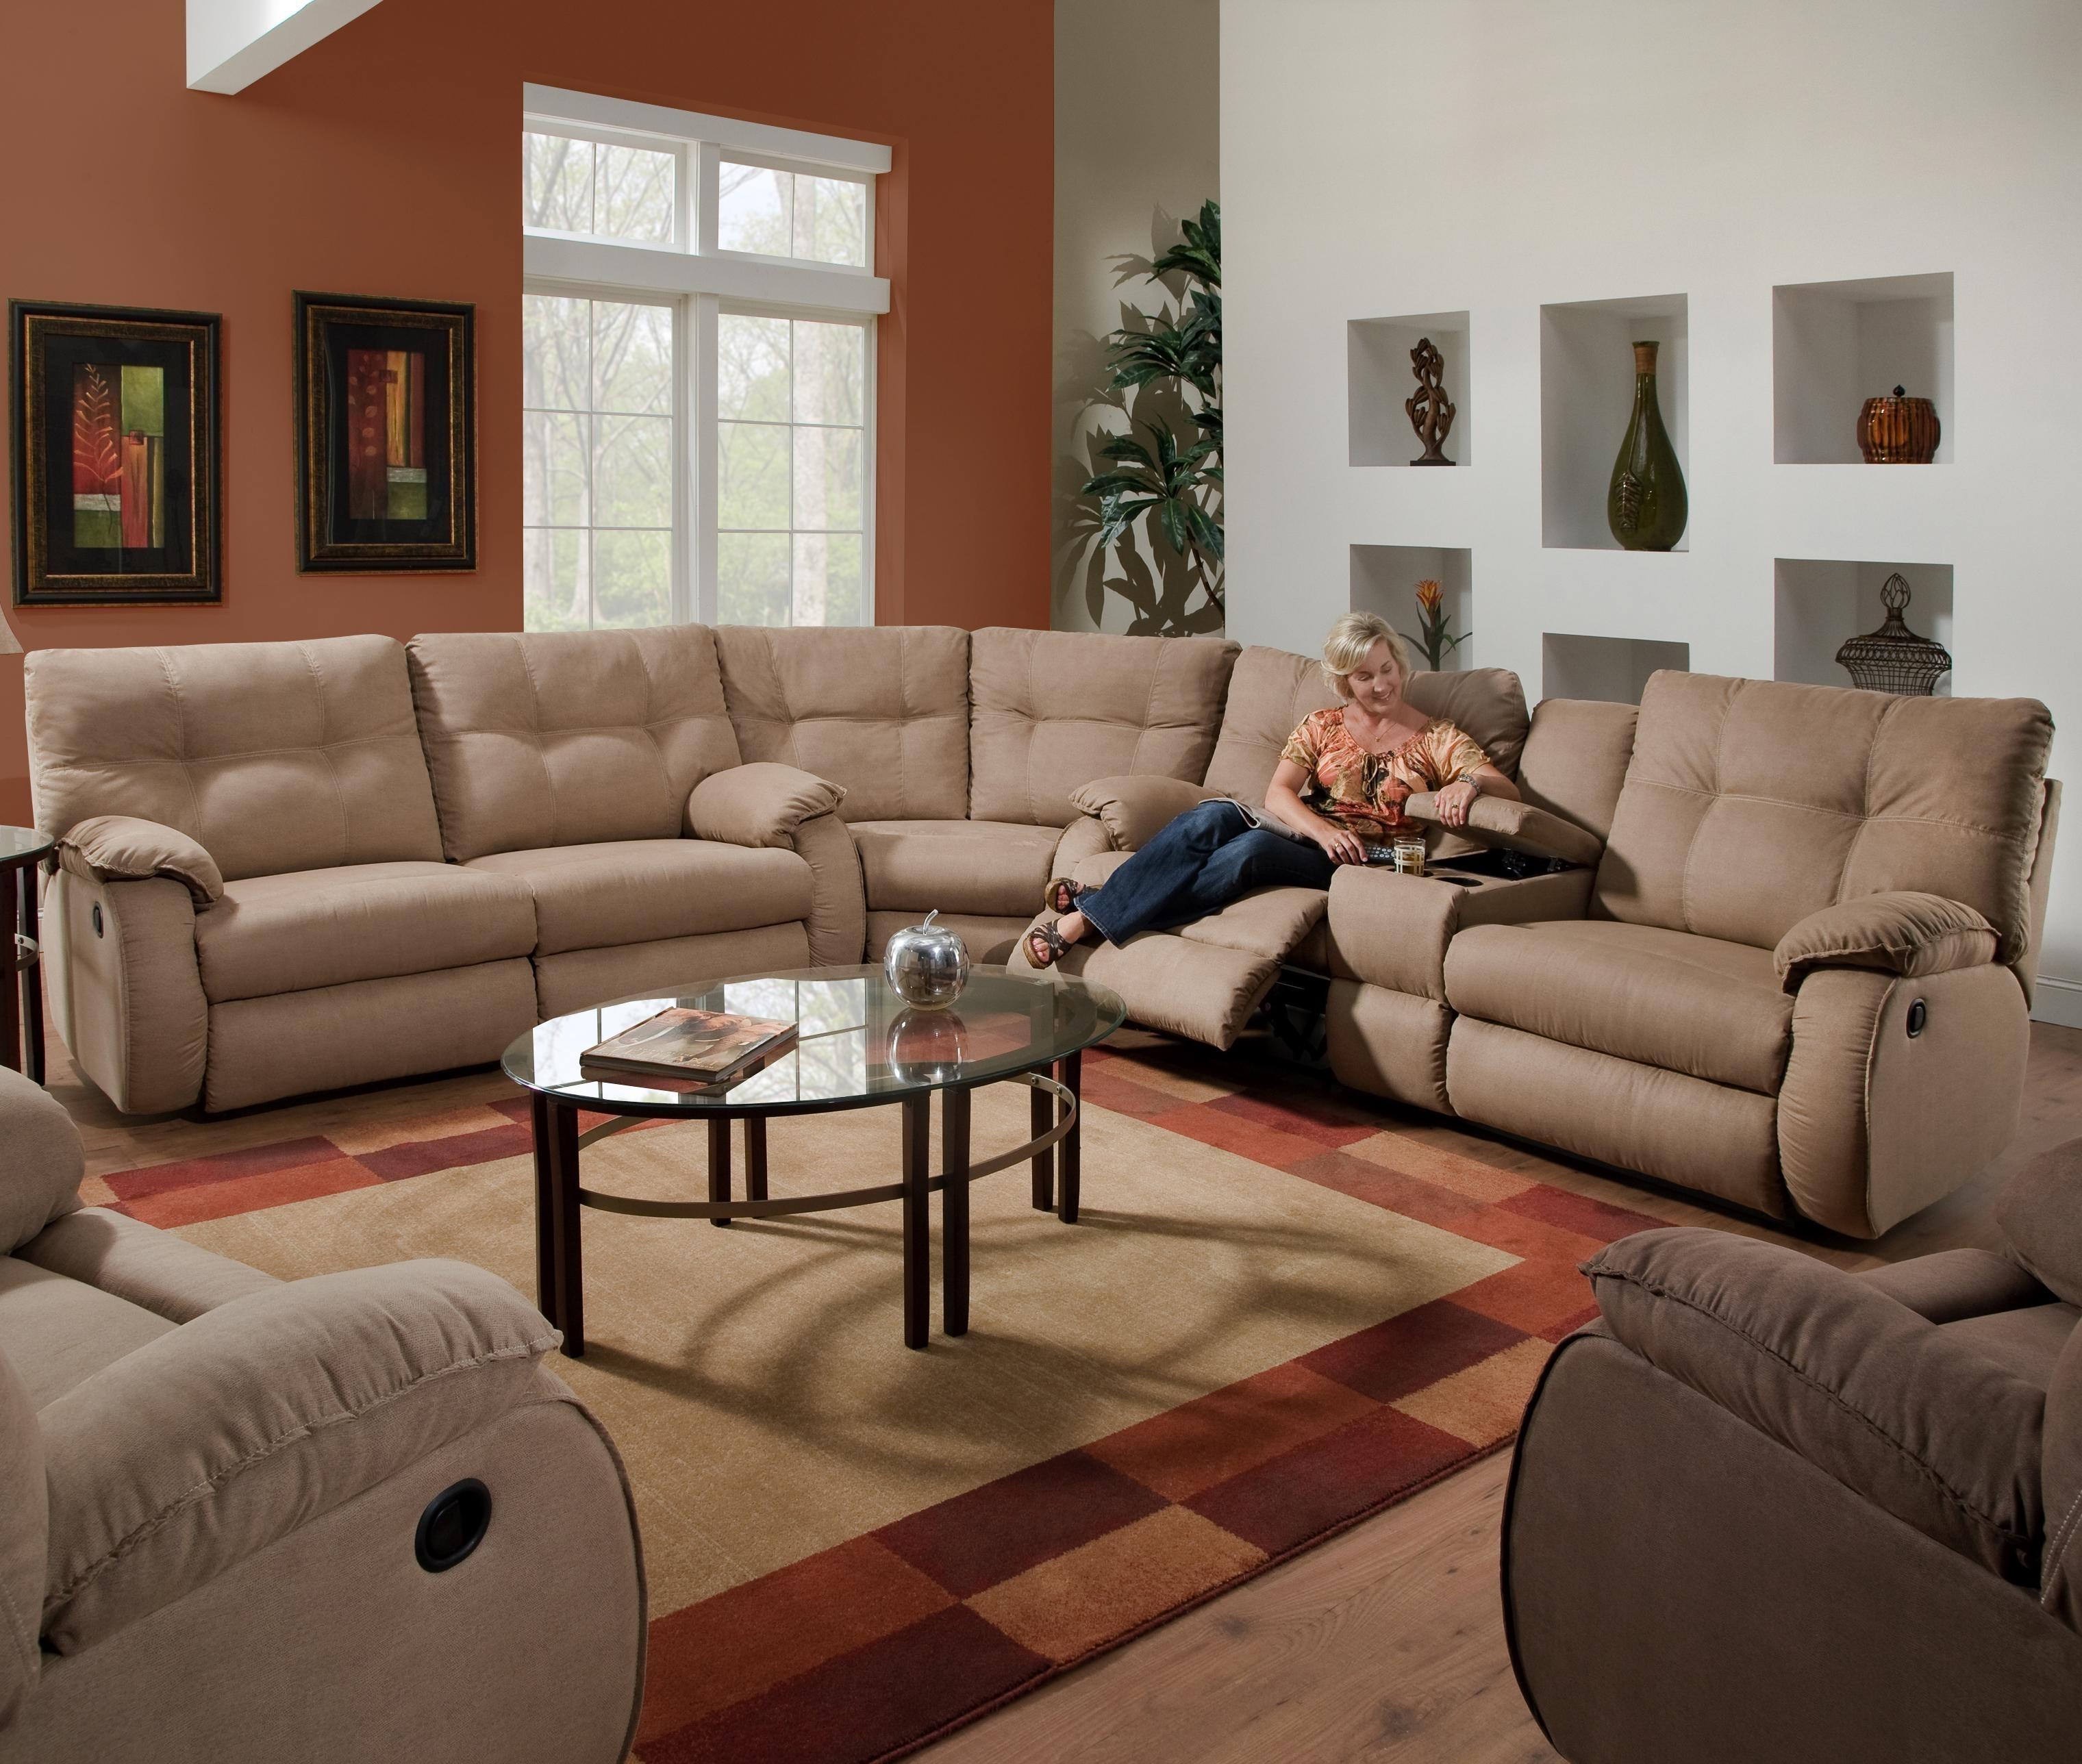 Reclining Sectional Sofas | Aifaresidency Throughout Sectional Sofas With Consoles (View 3 of 10)